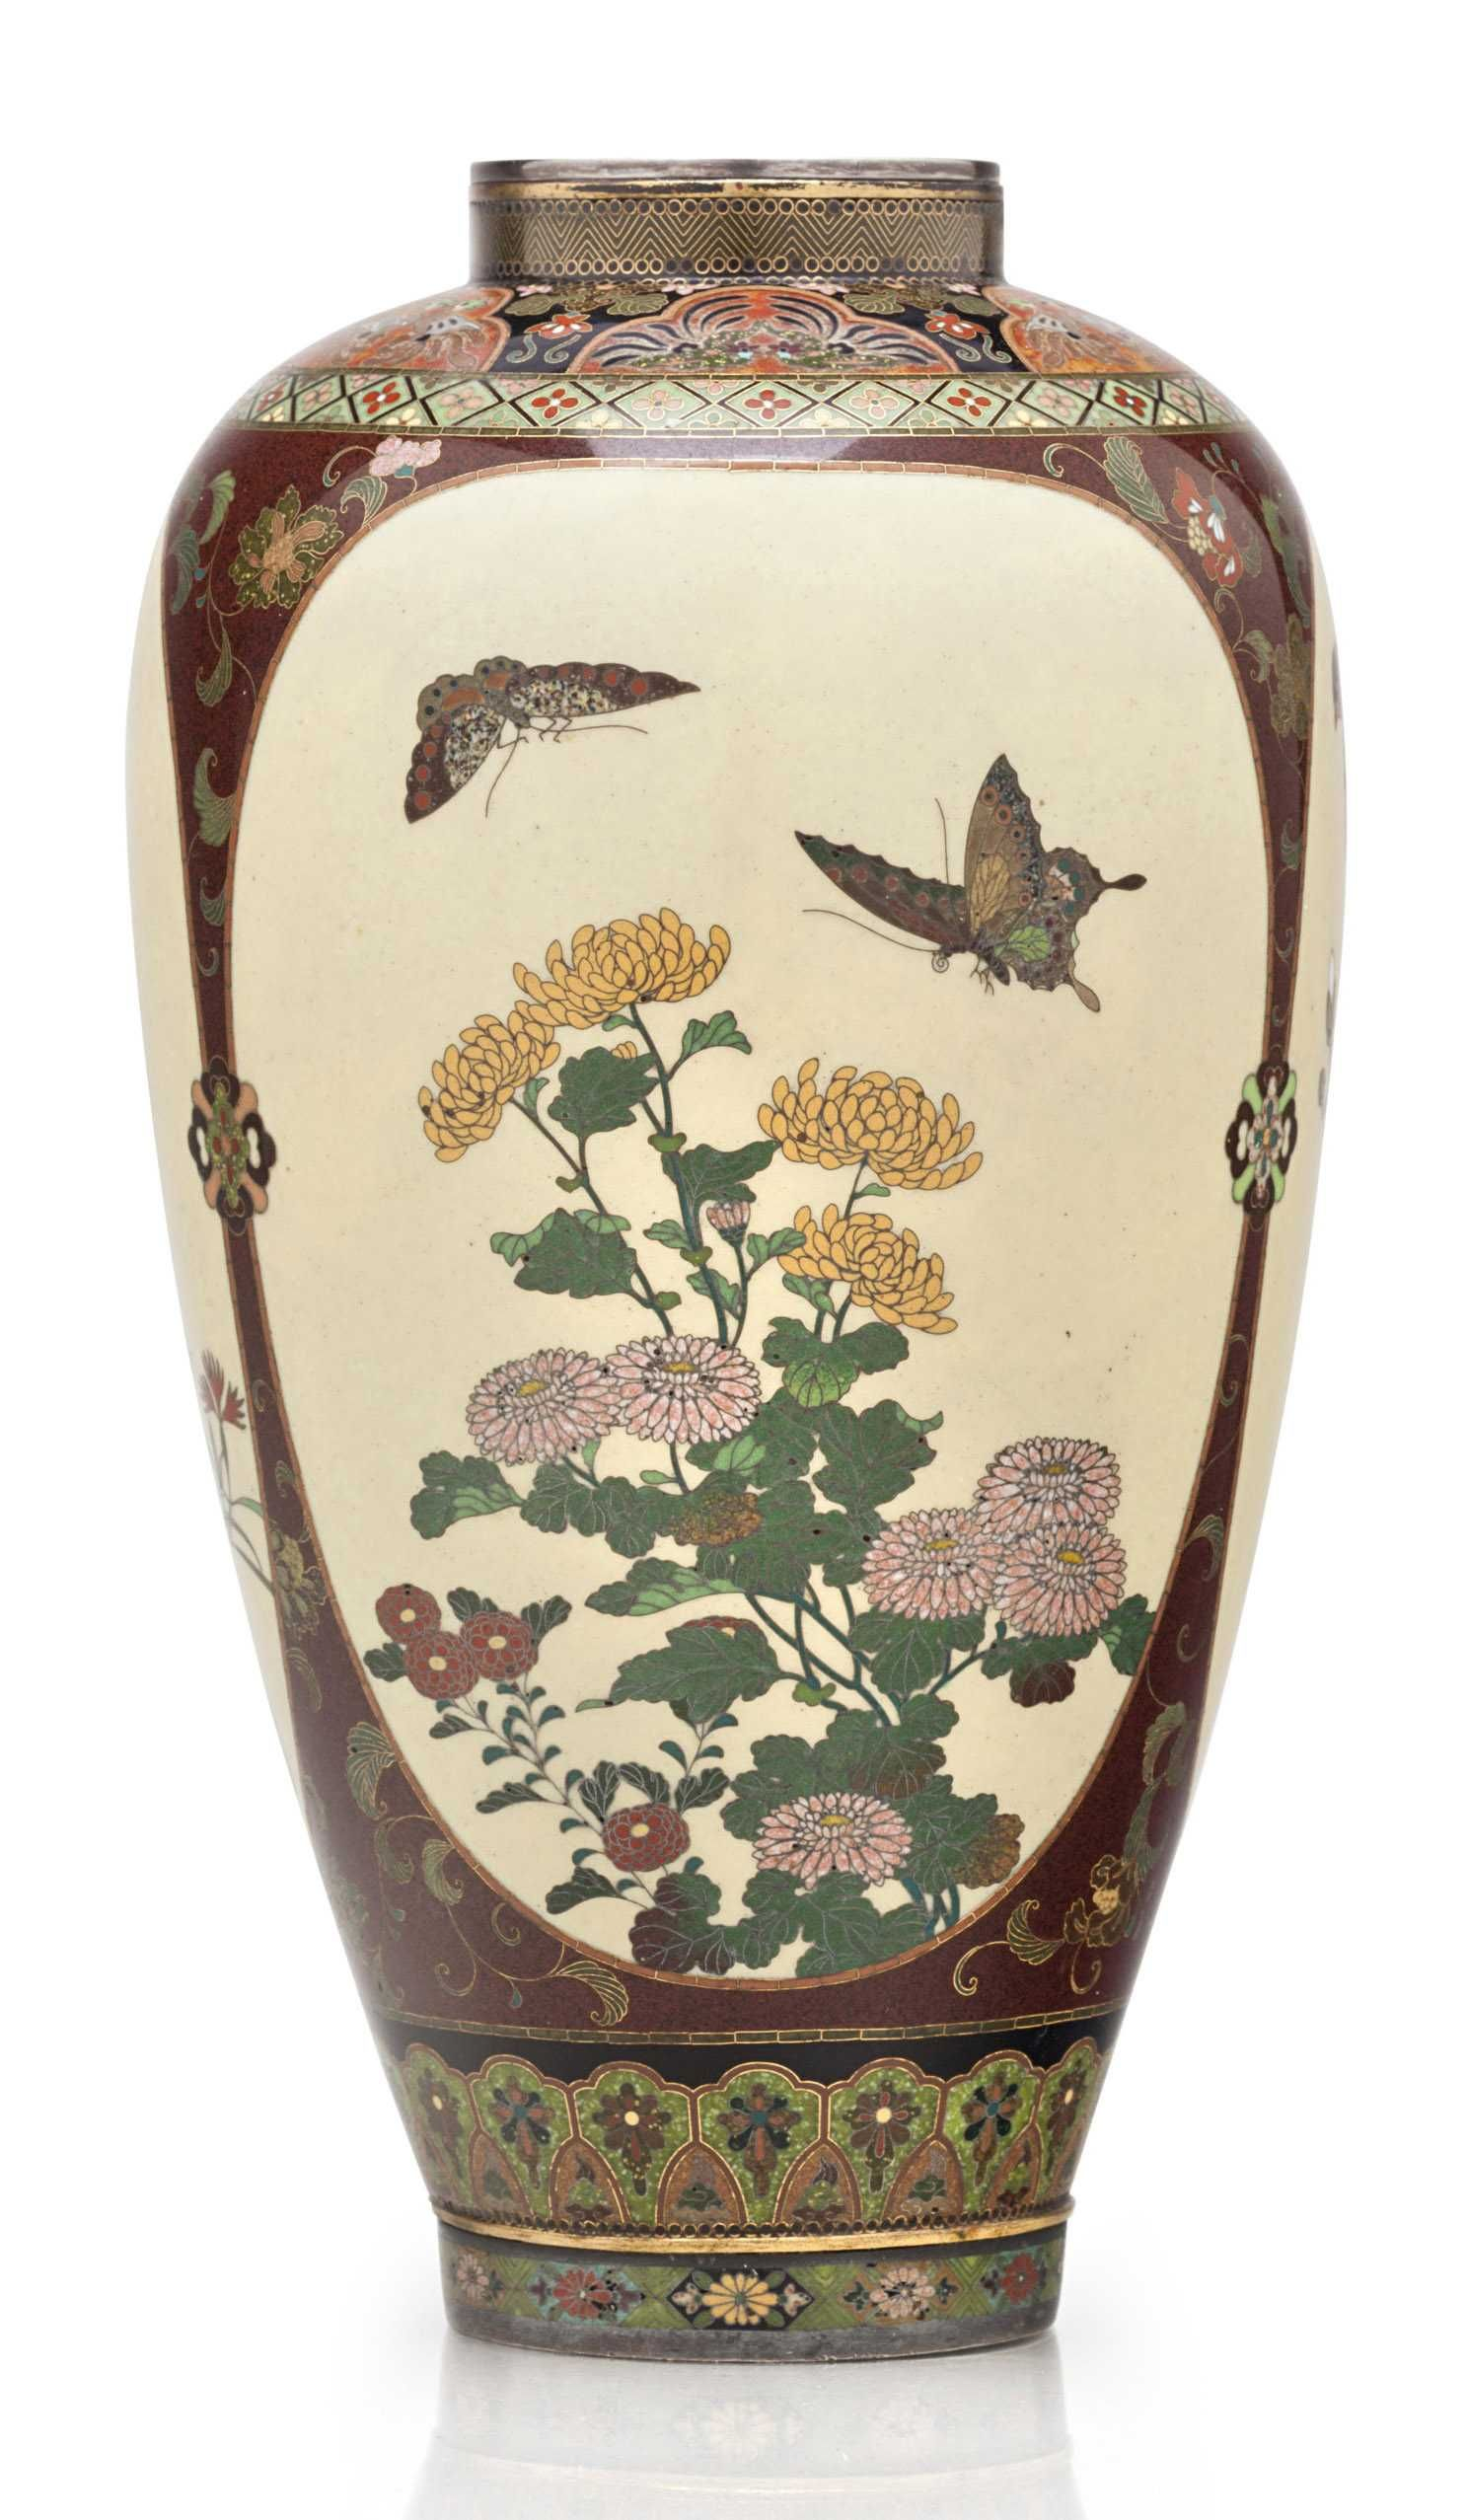 A cloisonné enamel vase Meiji period (late 19th century), attributed to the workshop of Namikawa Yasuyuki (1845-1927) The tapering ovoid form with short straight neck decorated in polychrome enamels and gold and silver wires with three panels designed with birds, flowers and butterflies on a beige ground, each panel surrounded with scrolling flowers on a brown ground, the shoulder and the foot rim enamelled with floral lappets; rims silver